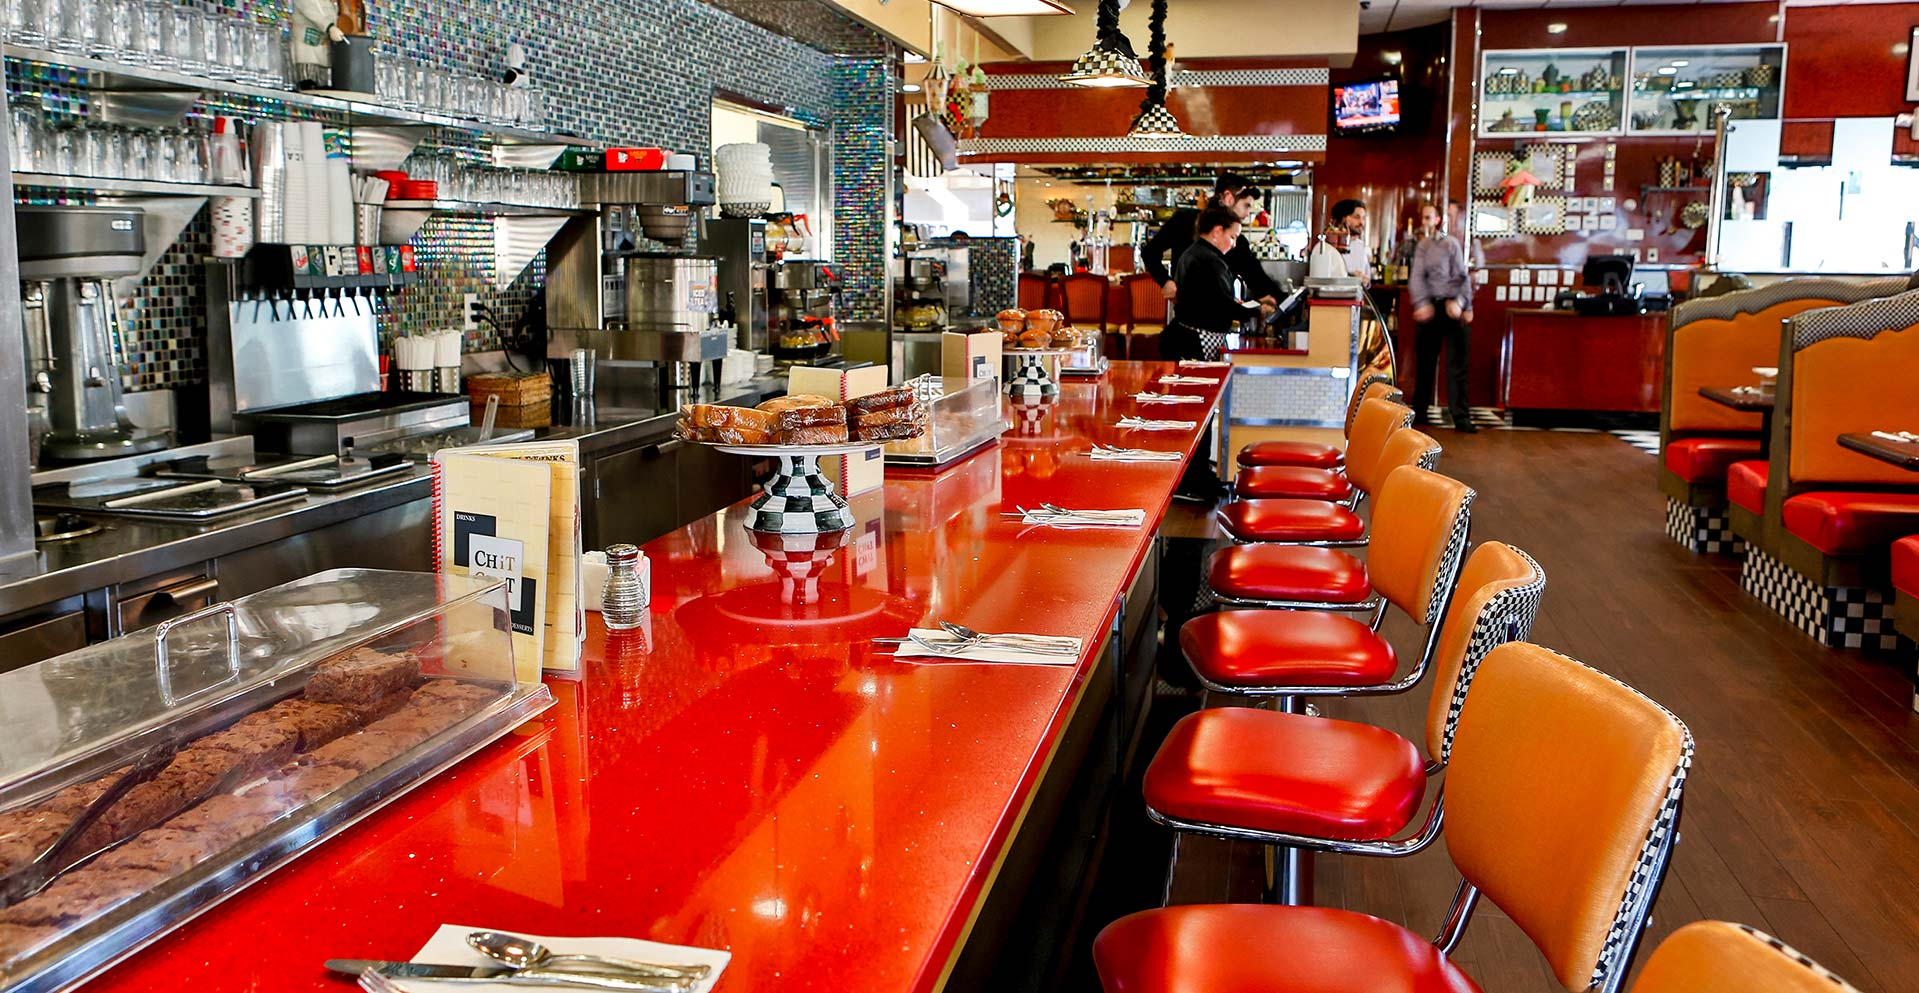 Chit Chat Diner Restaurant West Orange Hackensack New Jersey